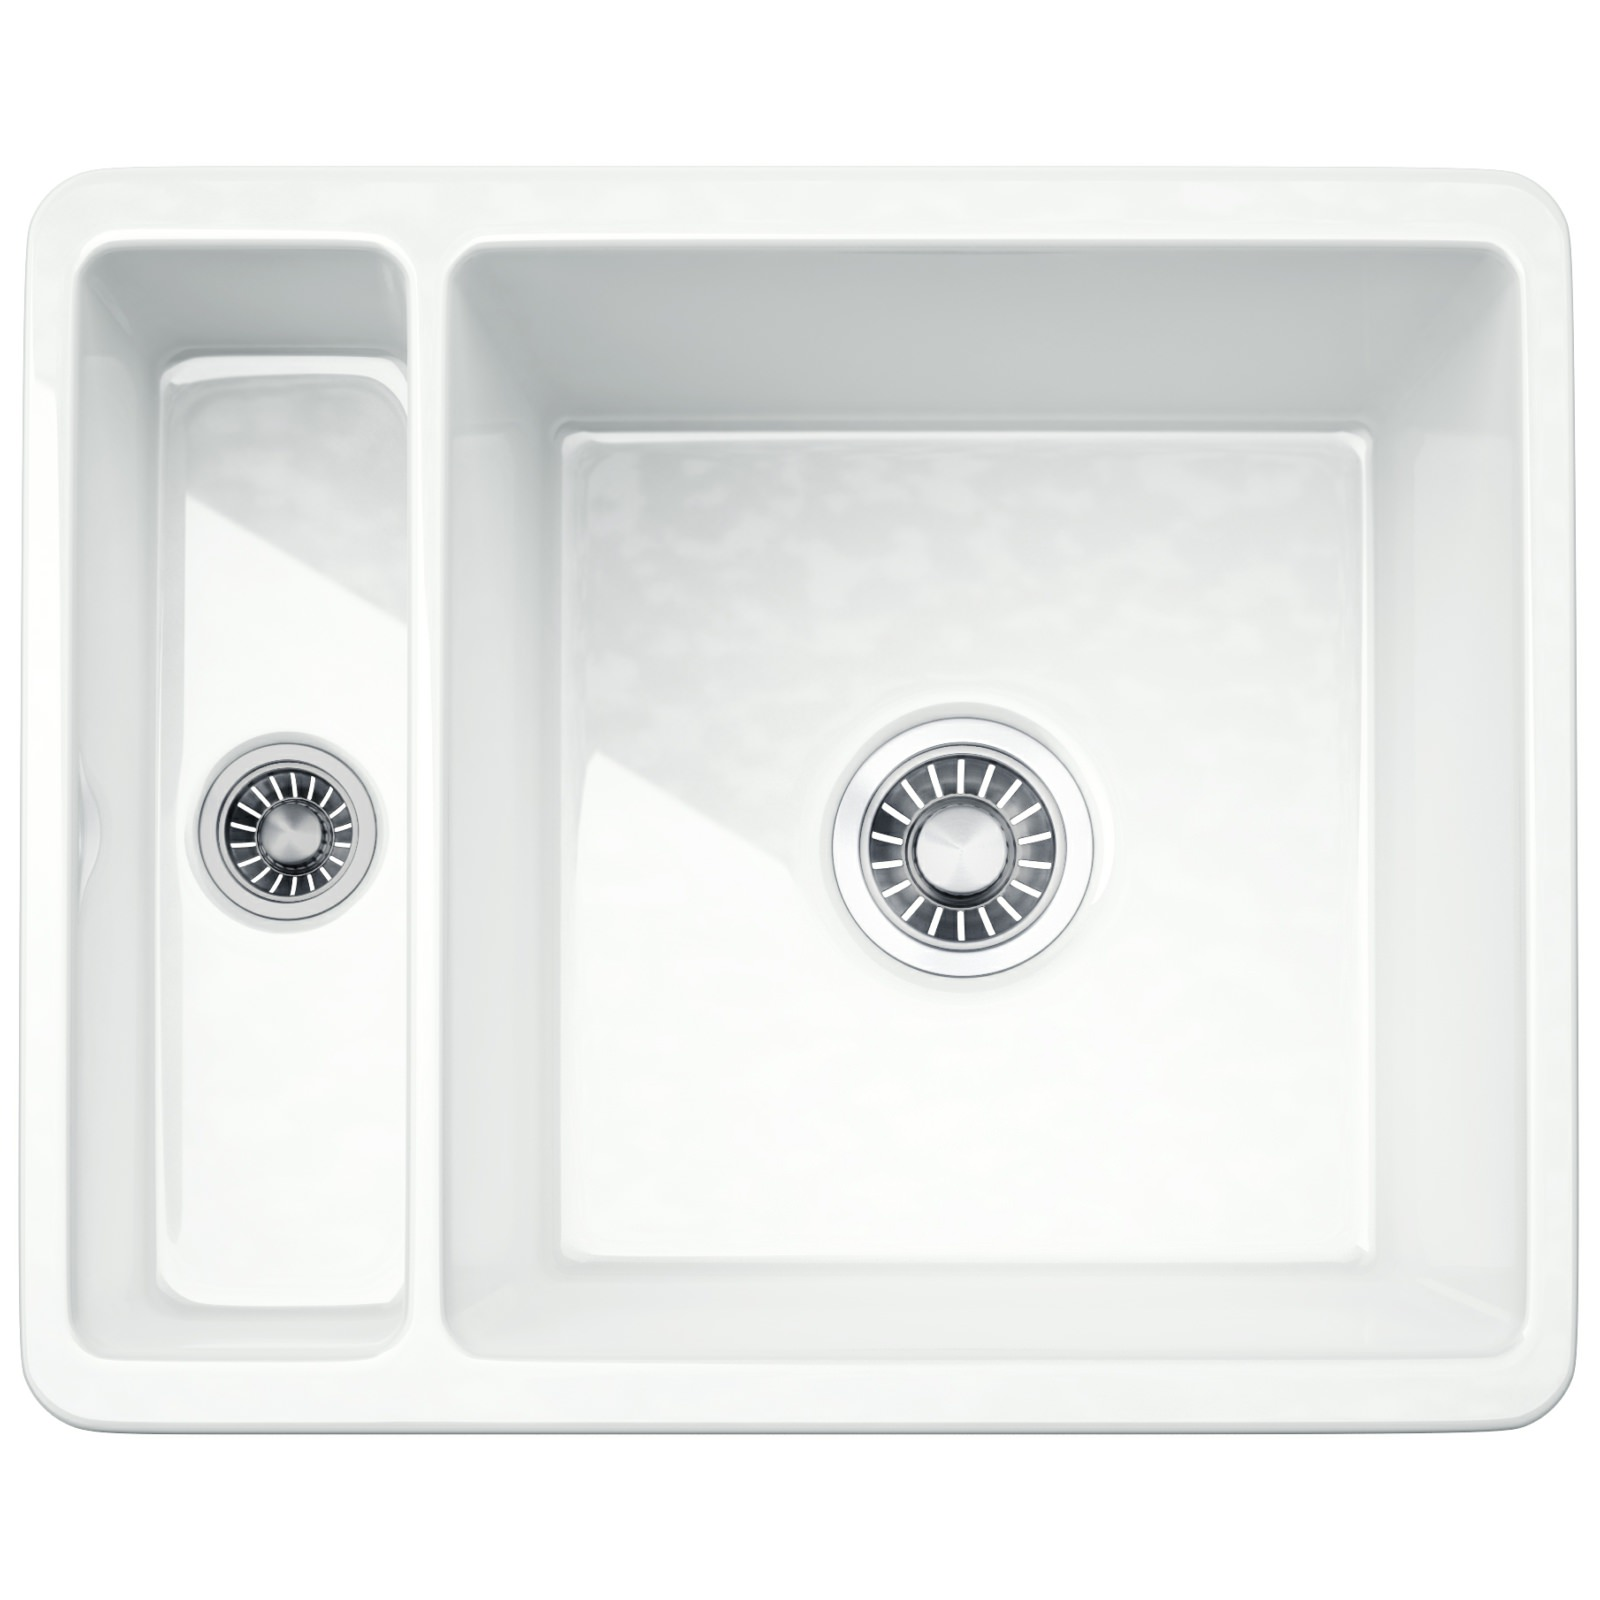 Franke Kubus KBK 160 Ceramic 1.5 Bowl Undermount Kitchen Sink 126 ...